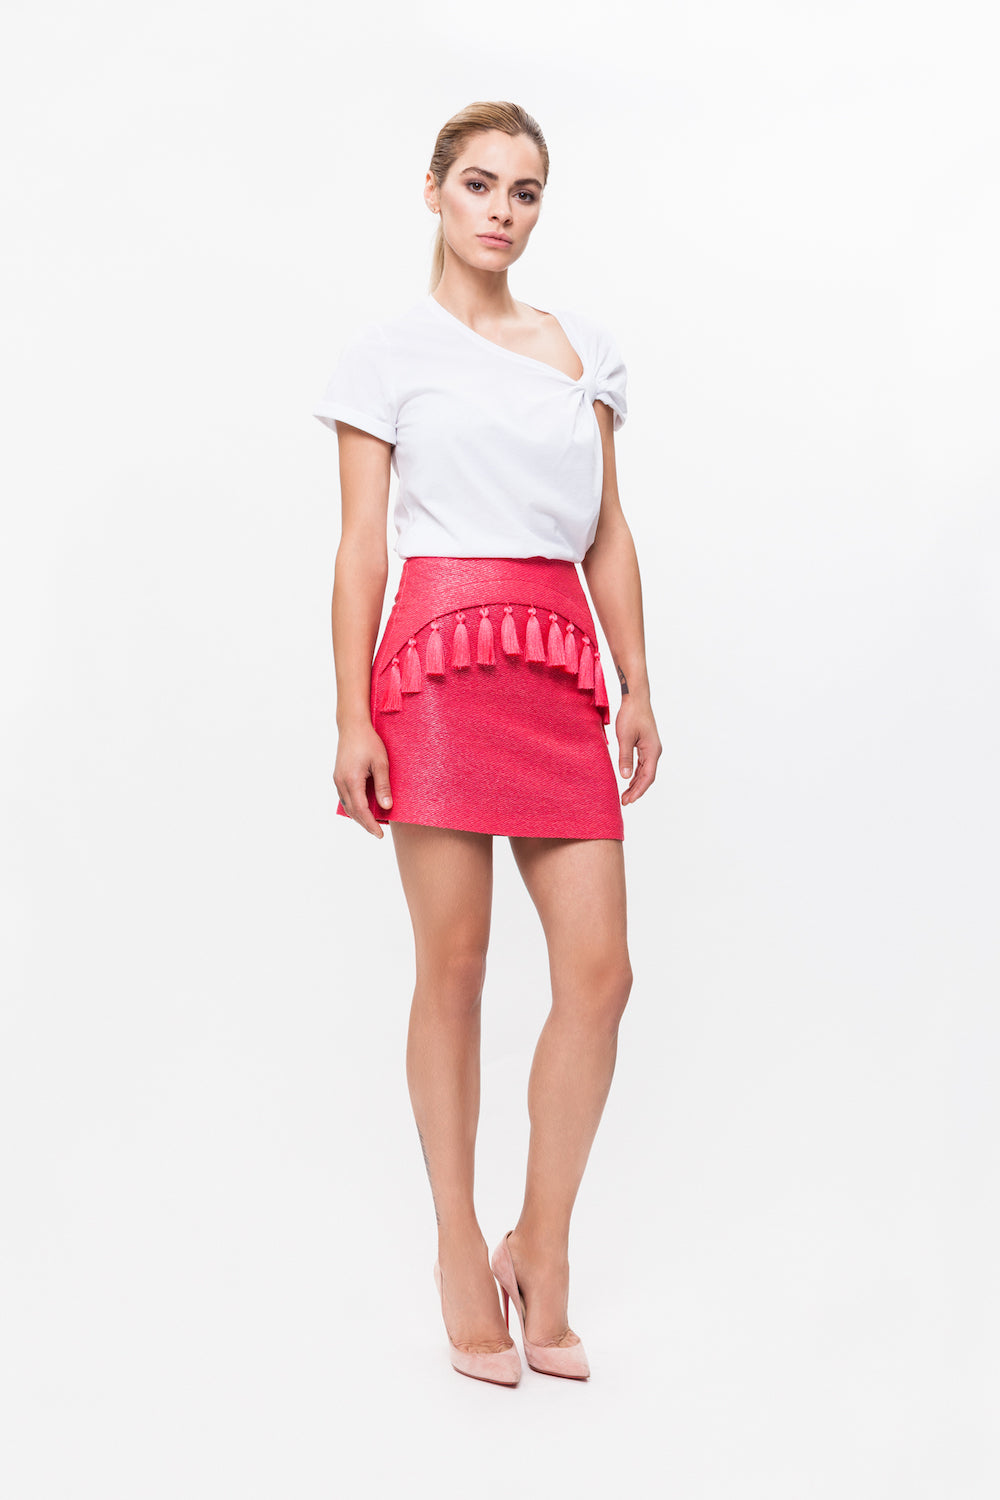 AMICA pink skirt